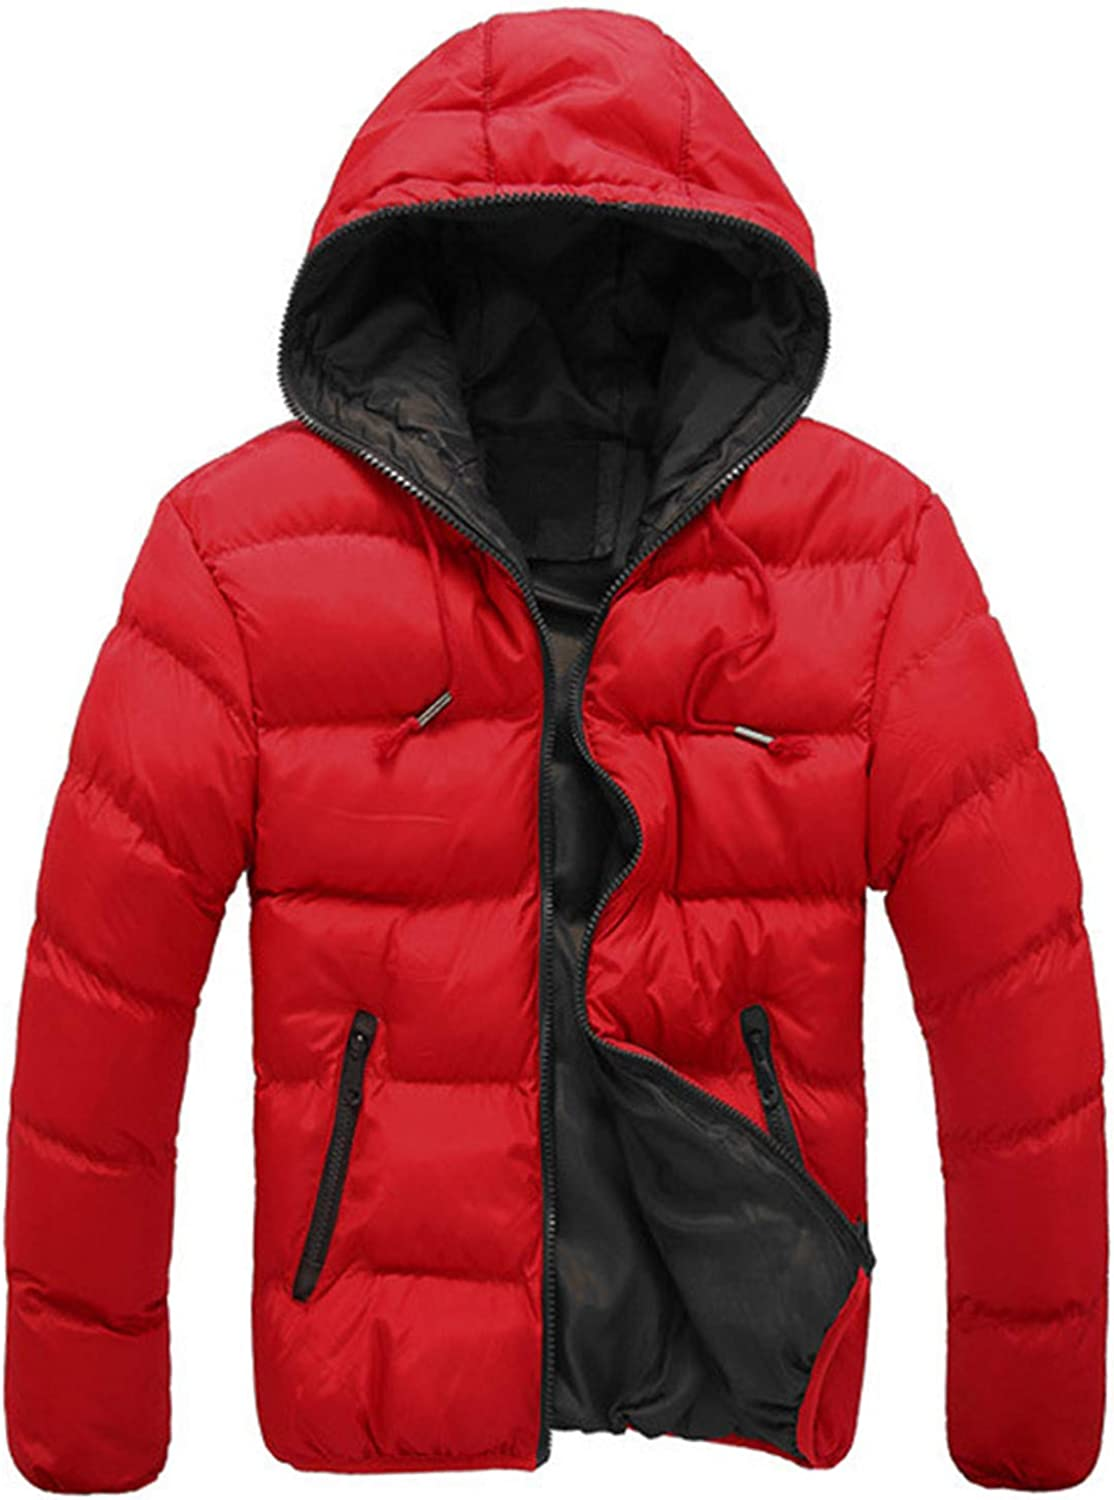 Men's Winter Jacket,Thicken Quilted Hooded Padded Down Alternative Puffer Coat Outerwear Overcoat (Black,Medium)